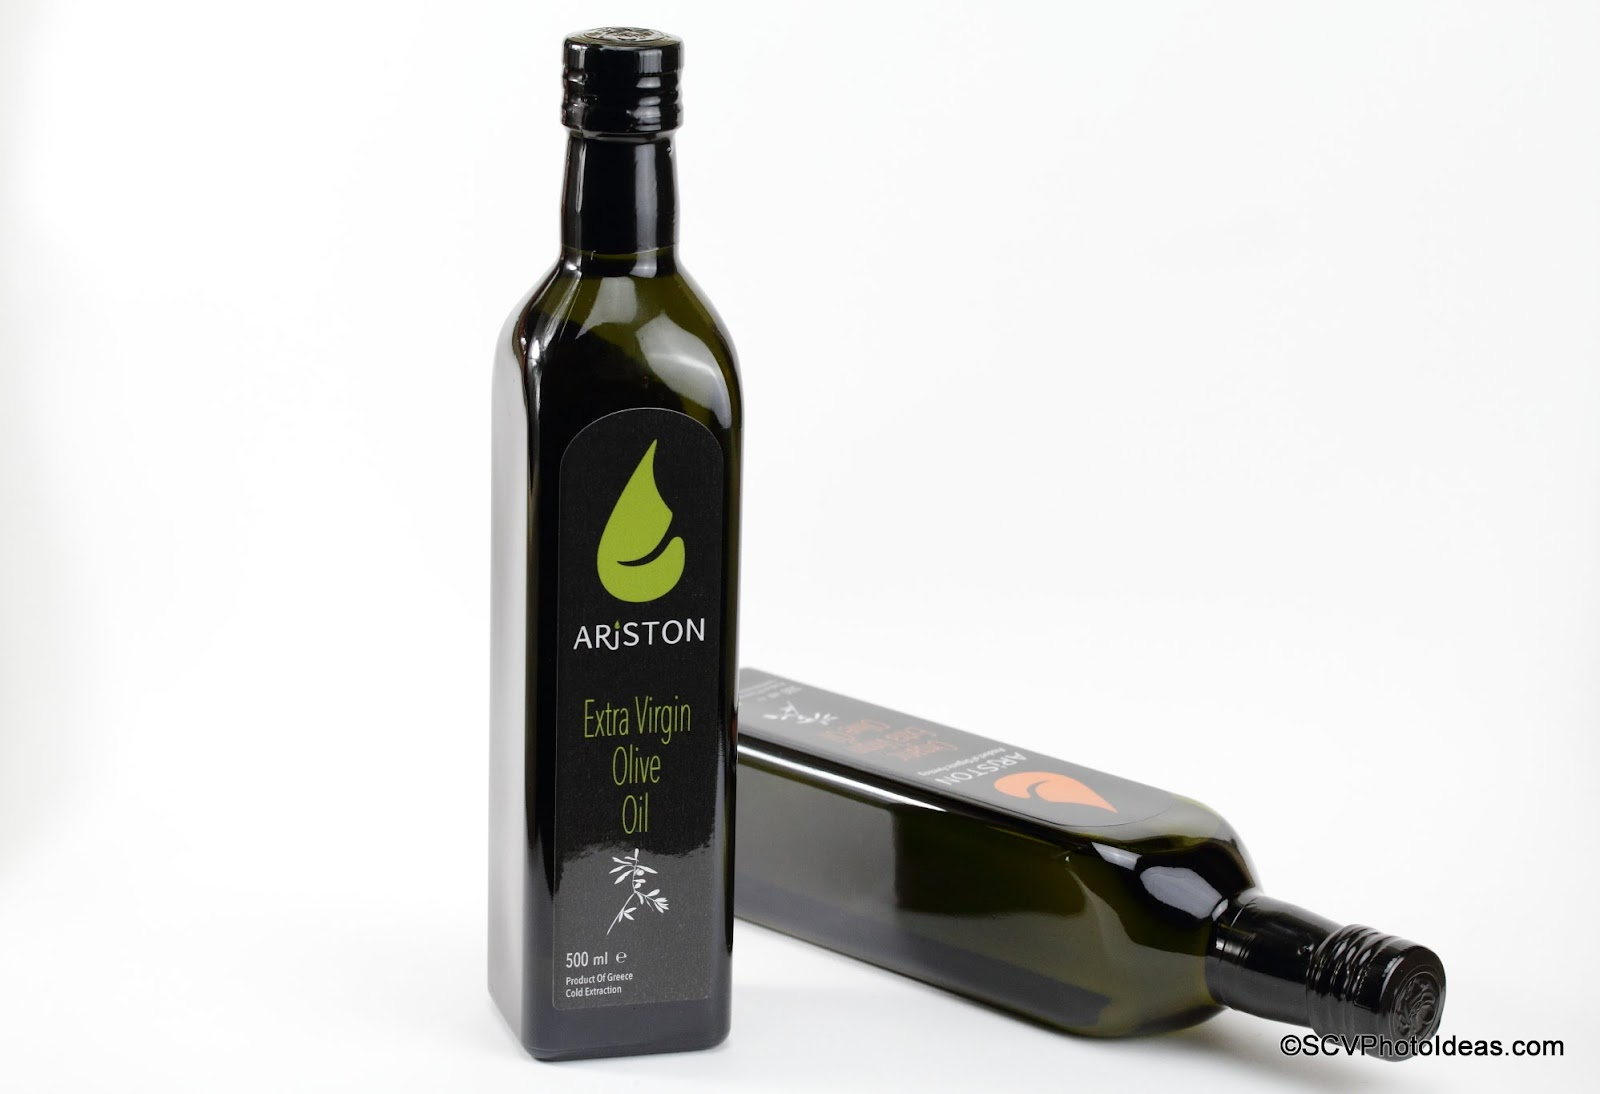 Ariston Extra Virgin Olive Oil - Standing